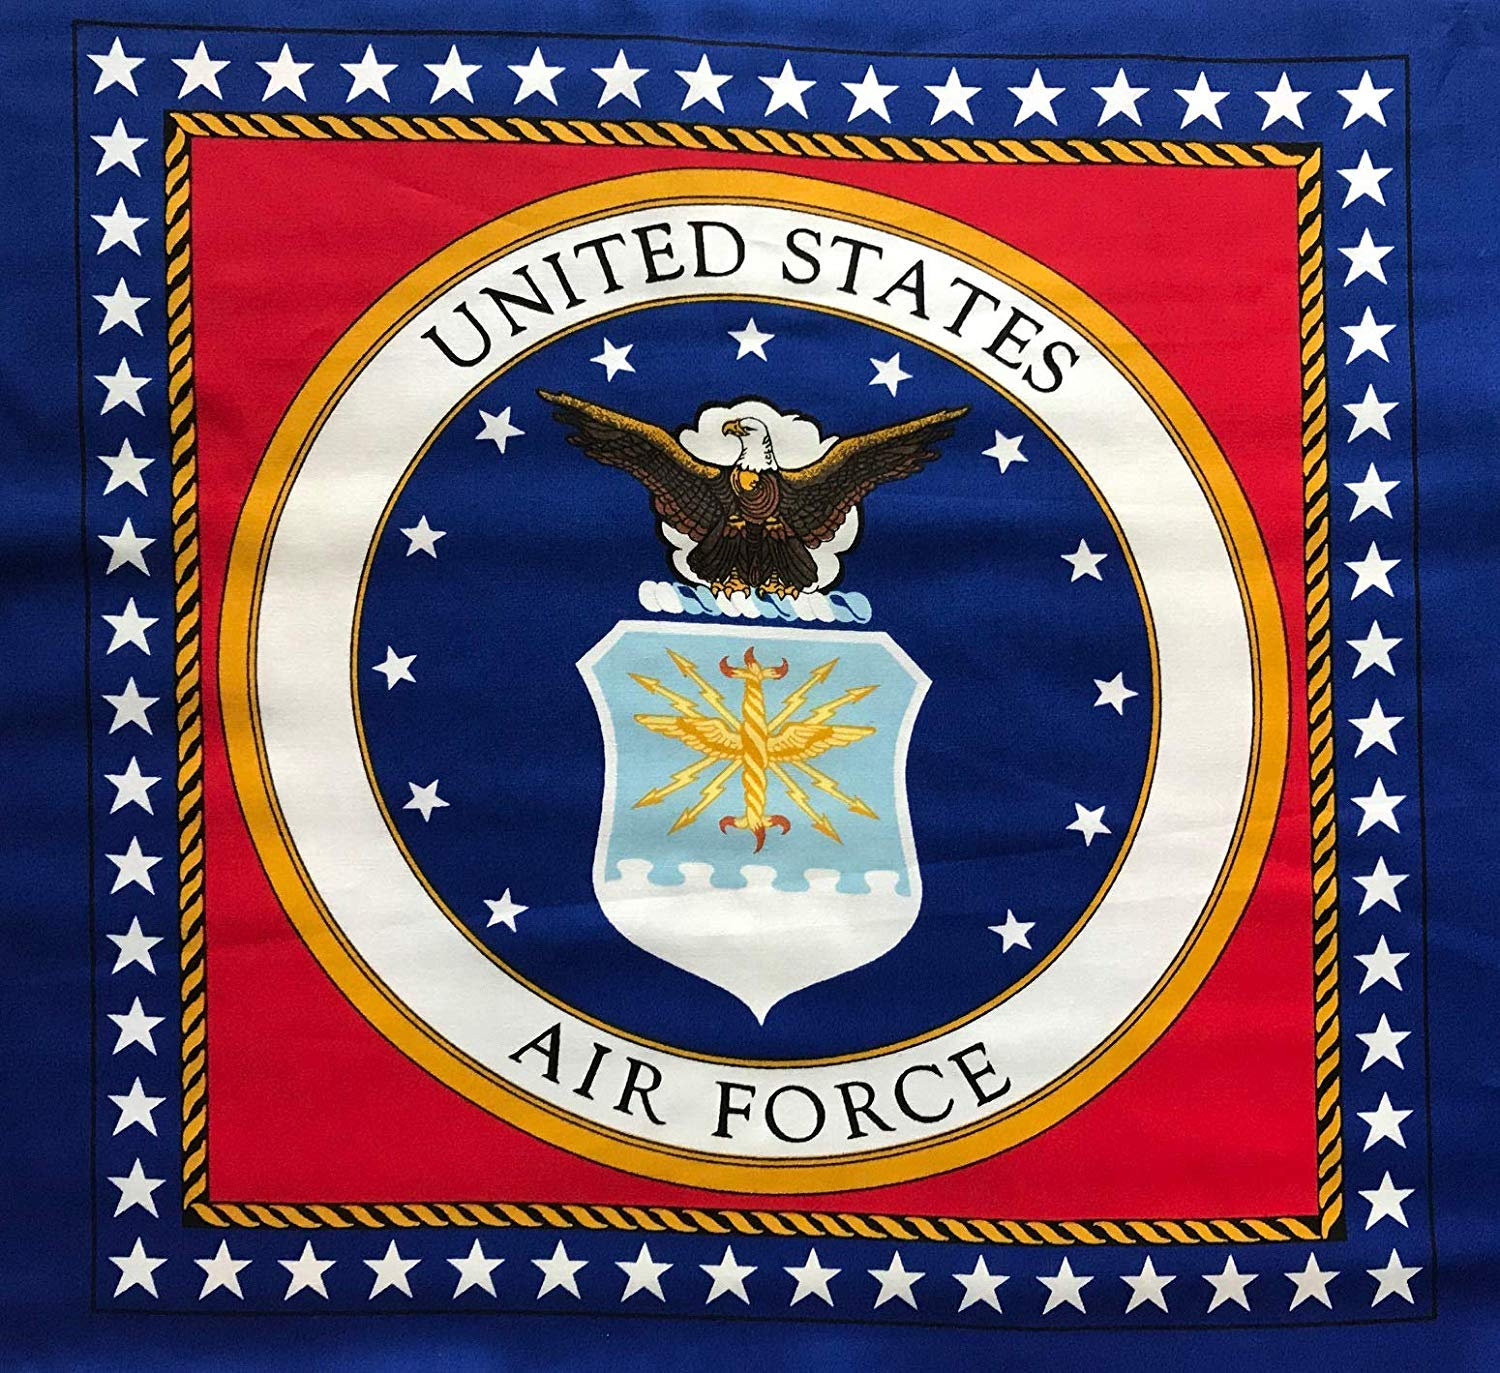 U.S. AIR FORCE Seal, Panel With 4 Pillow Panels.